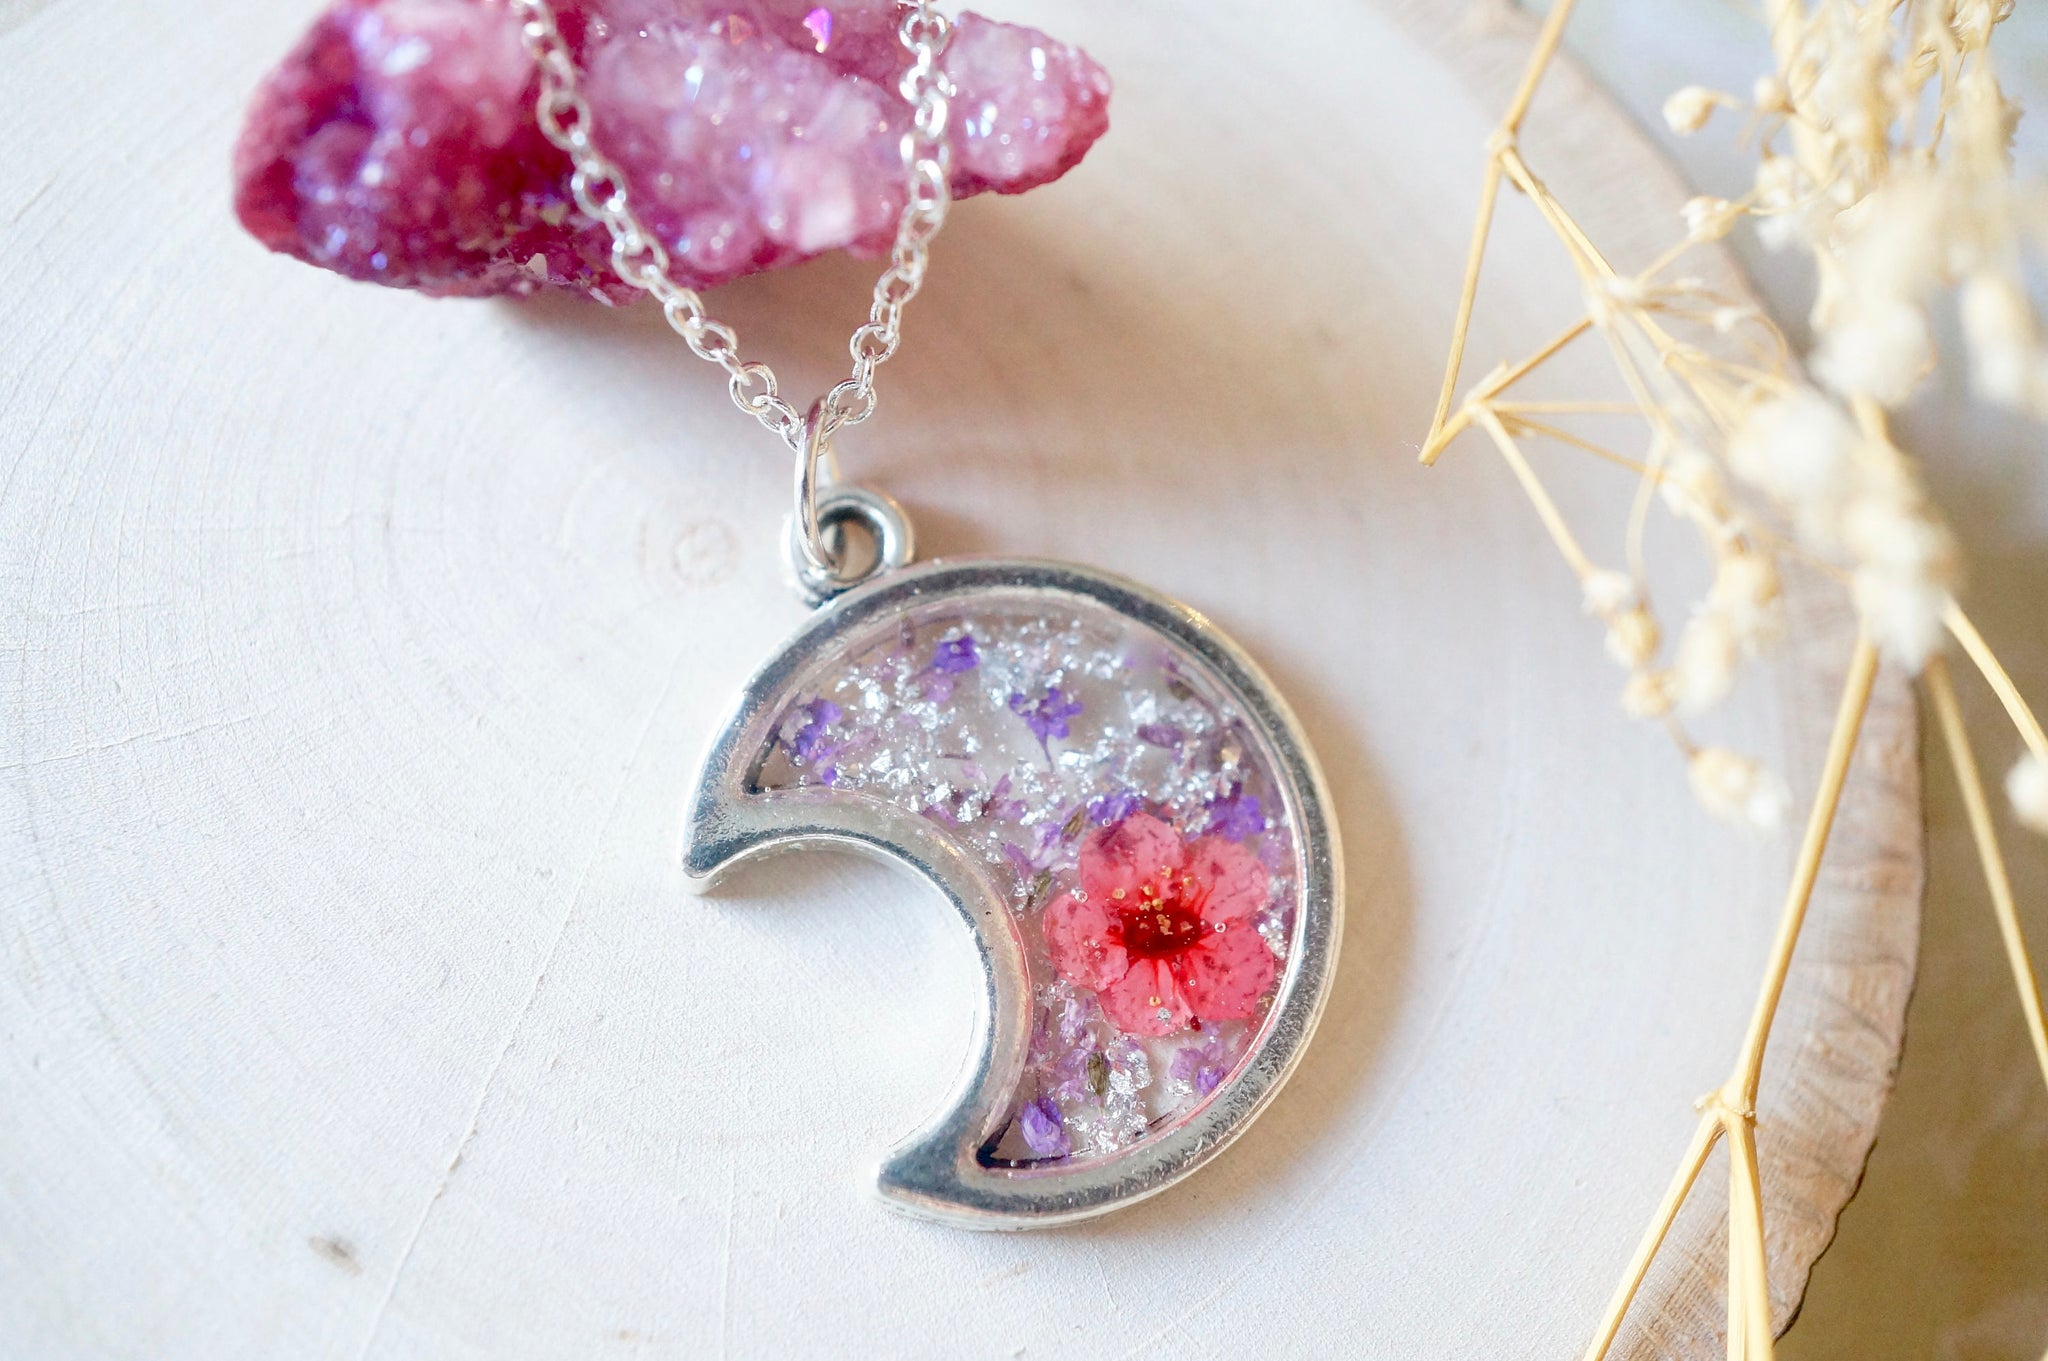 Real Dried Flowers and Resin Necklace, Silver Moon in Purple Pink and Silver Foil Flakes